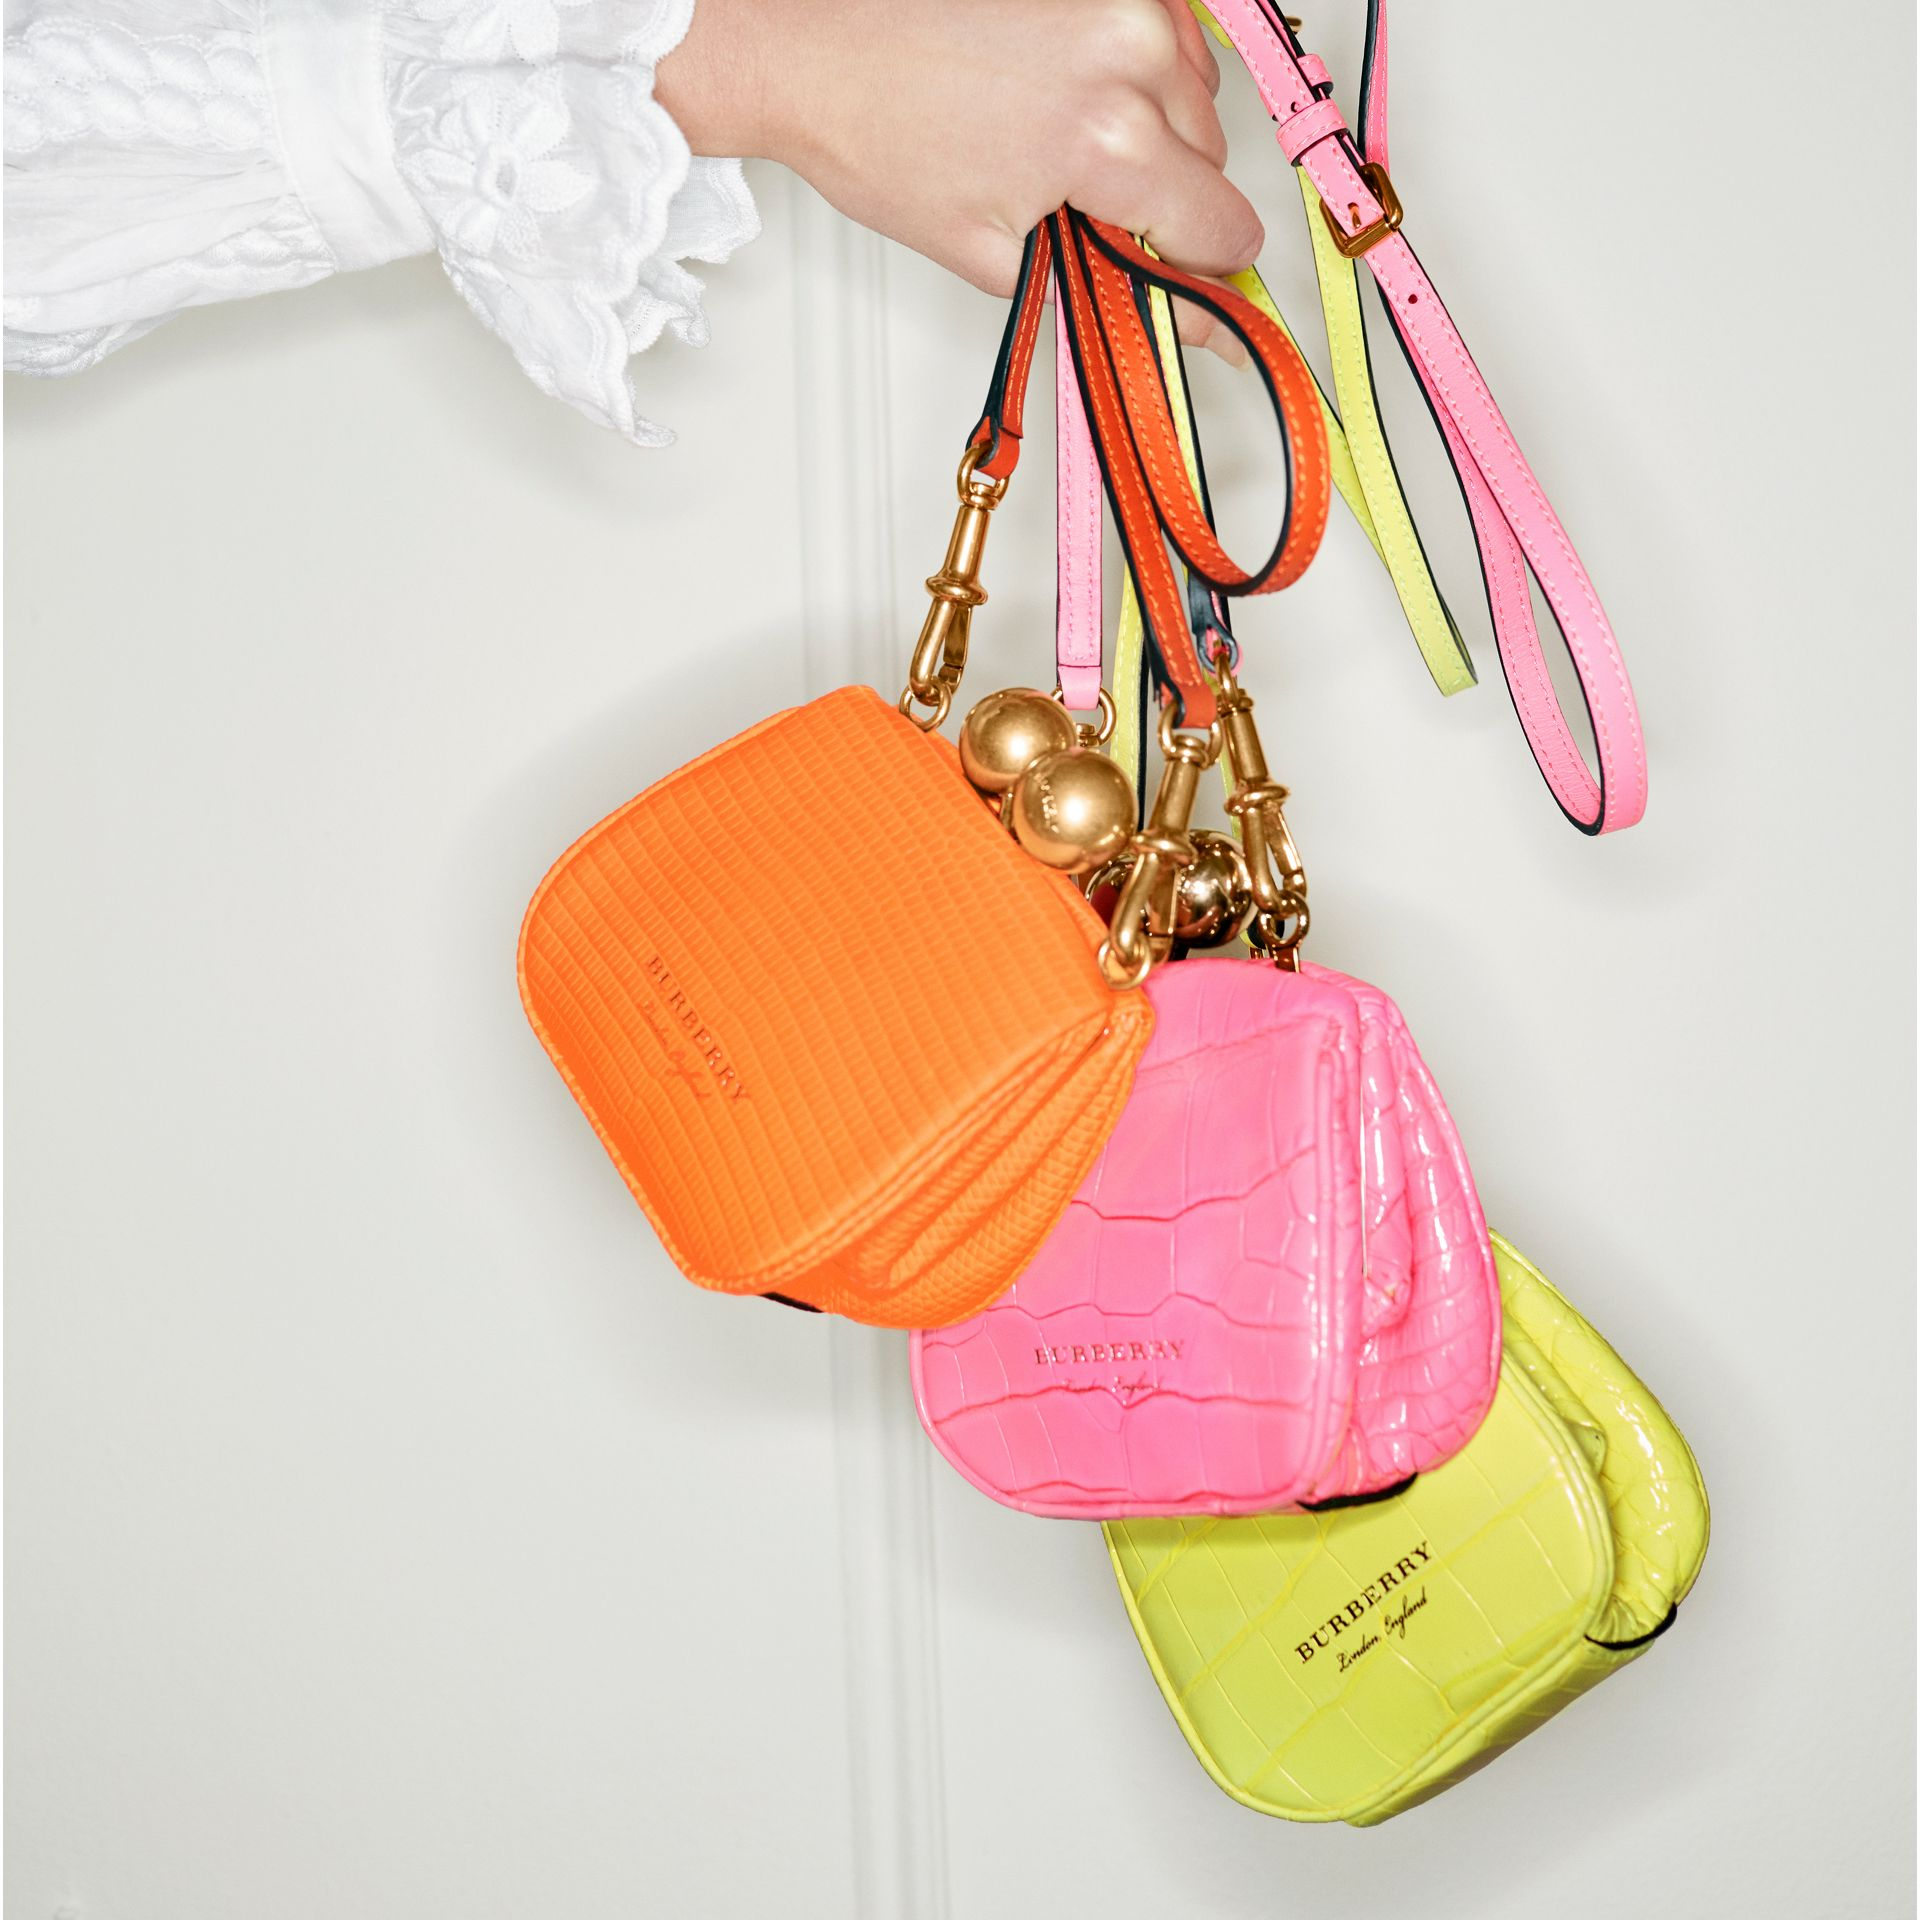 Mini Alligator Metal Frame Clutch Bag in Neon Pink - Women | Burberry Hong Kong - gallery image 6